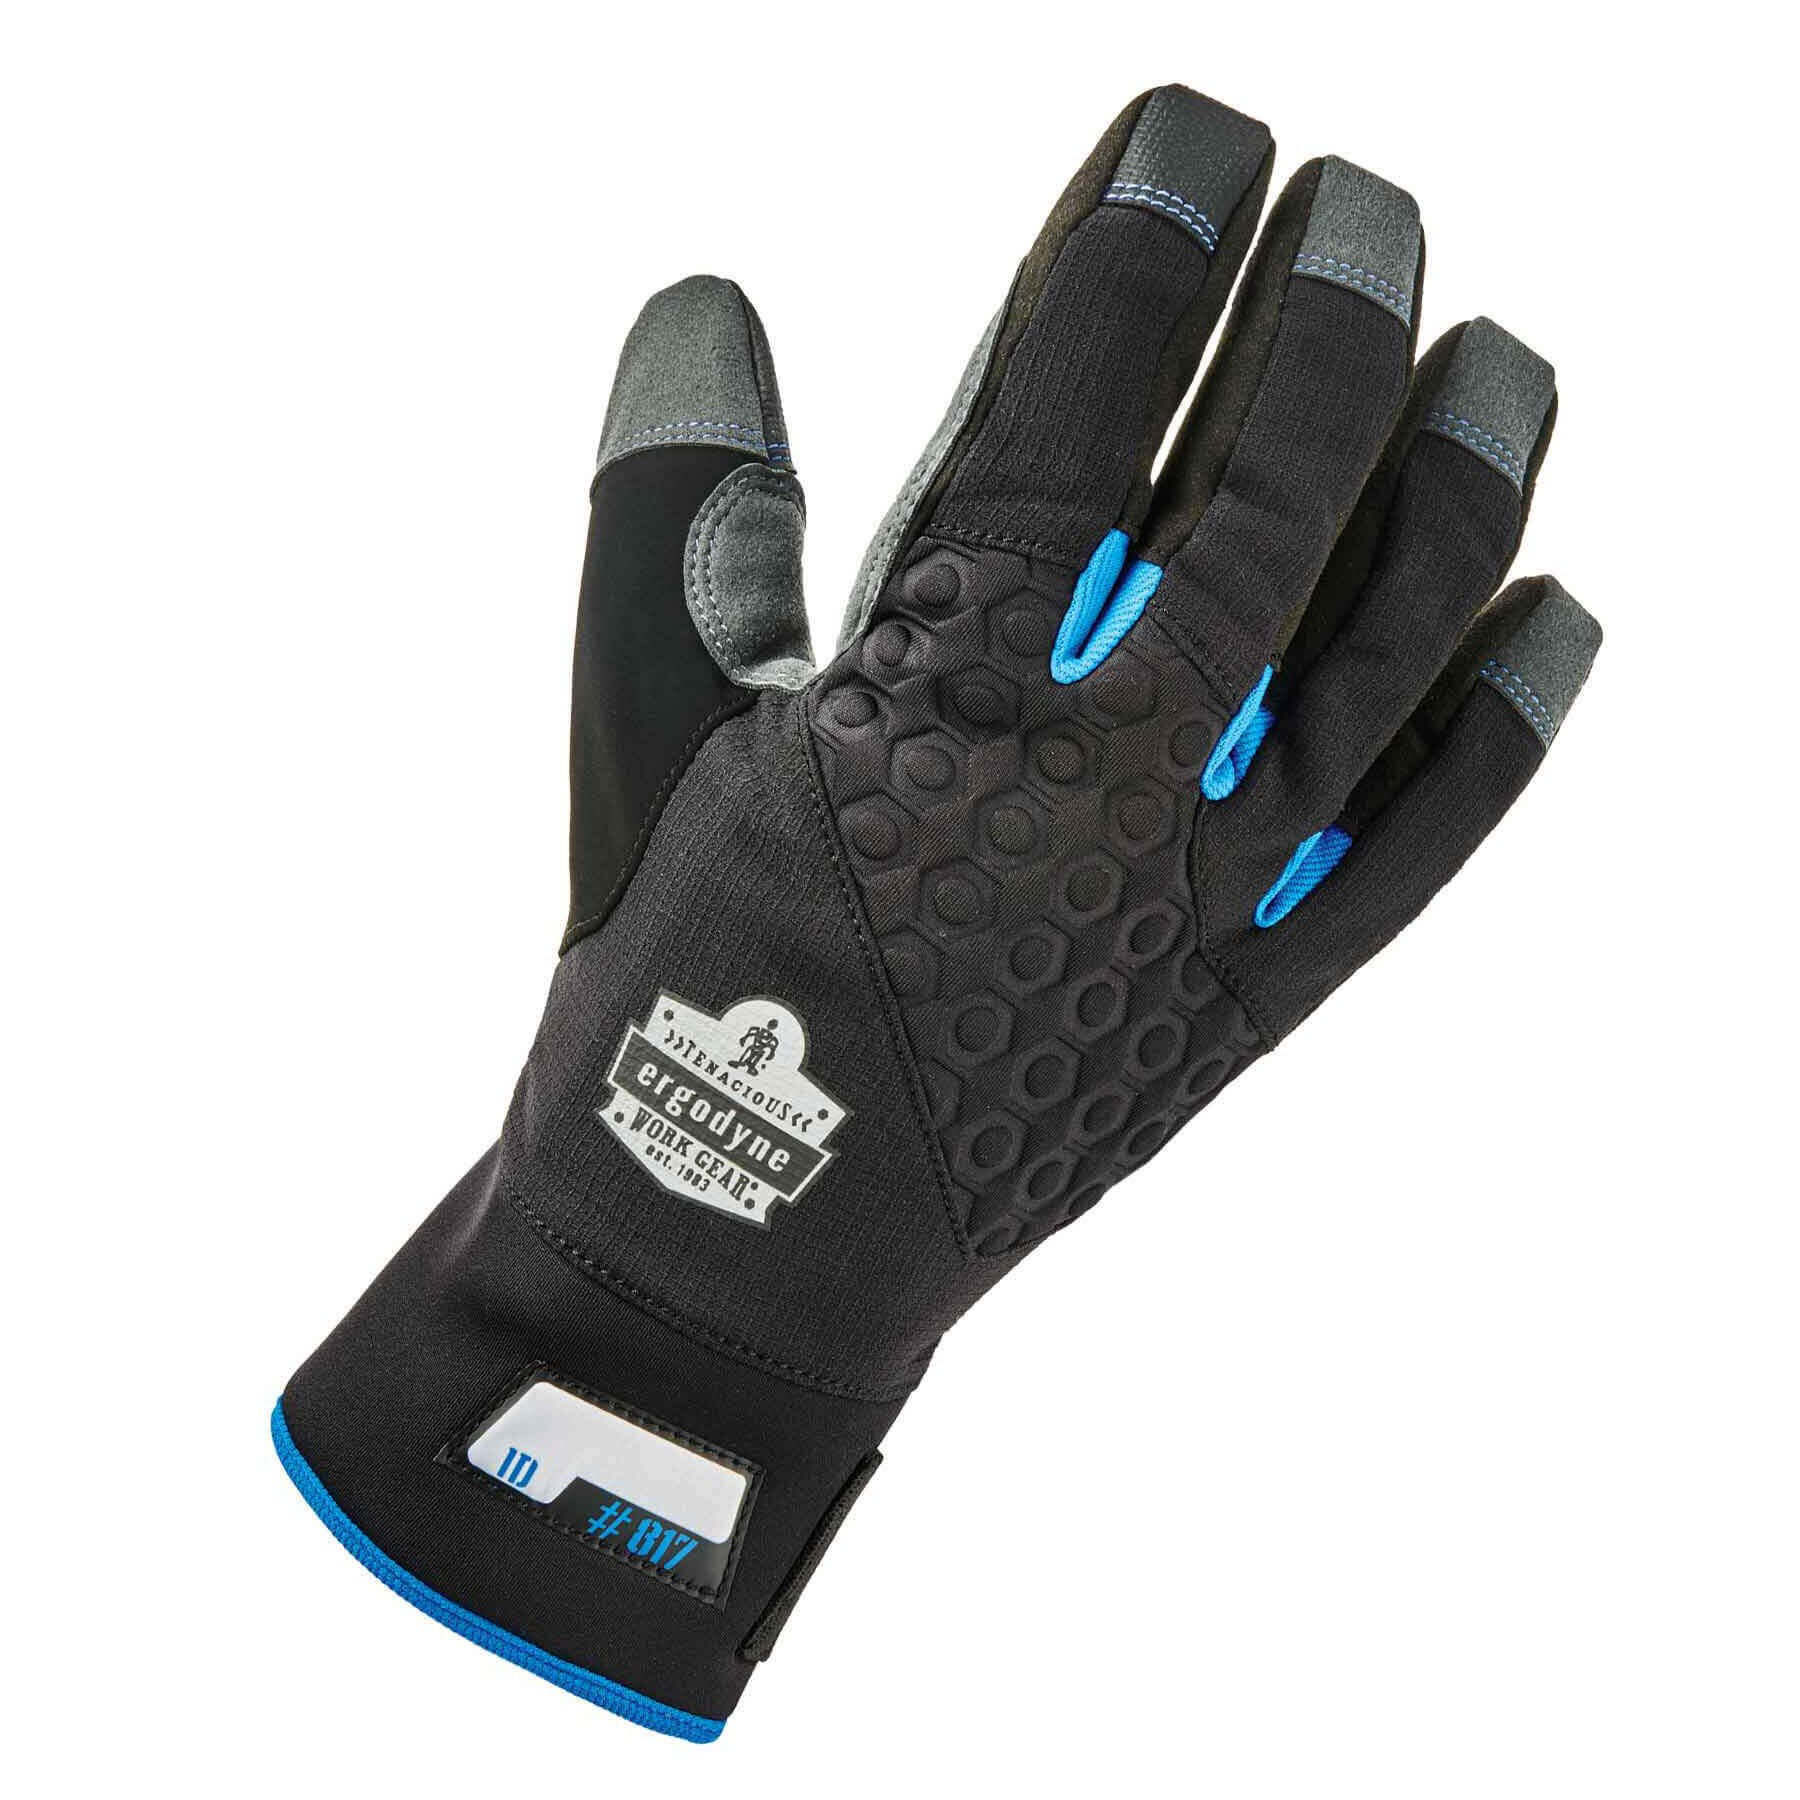 Ergodyne ProFlex 817WP Reinforced Thermal Waterproof Insulated Work Gloves, Touchscreen Capable, Black, Medium